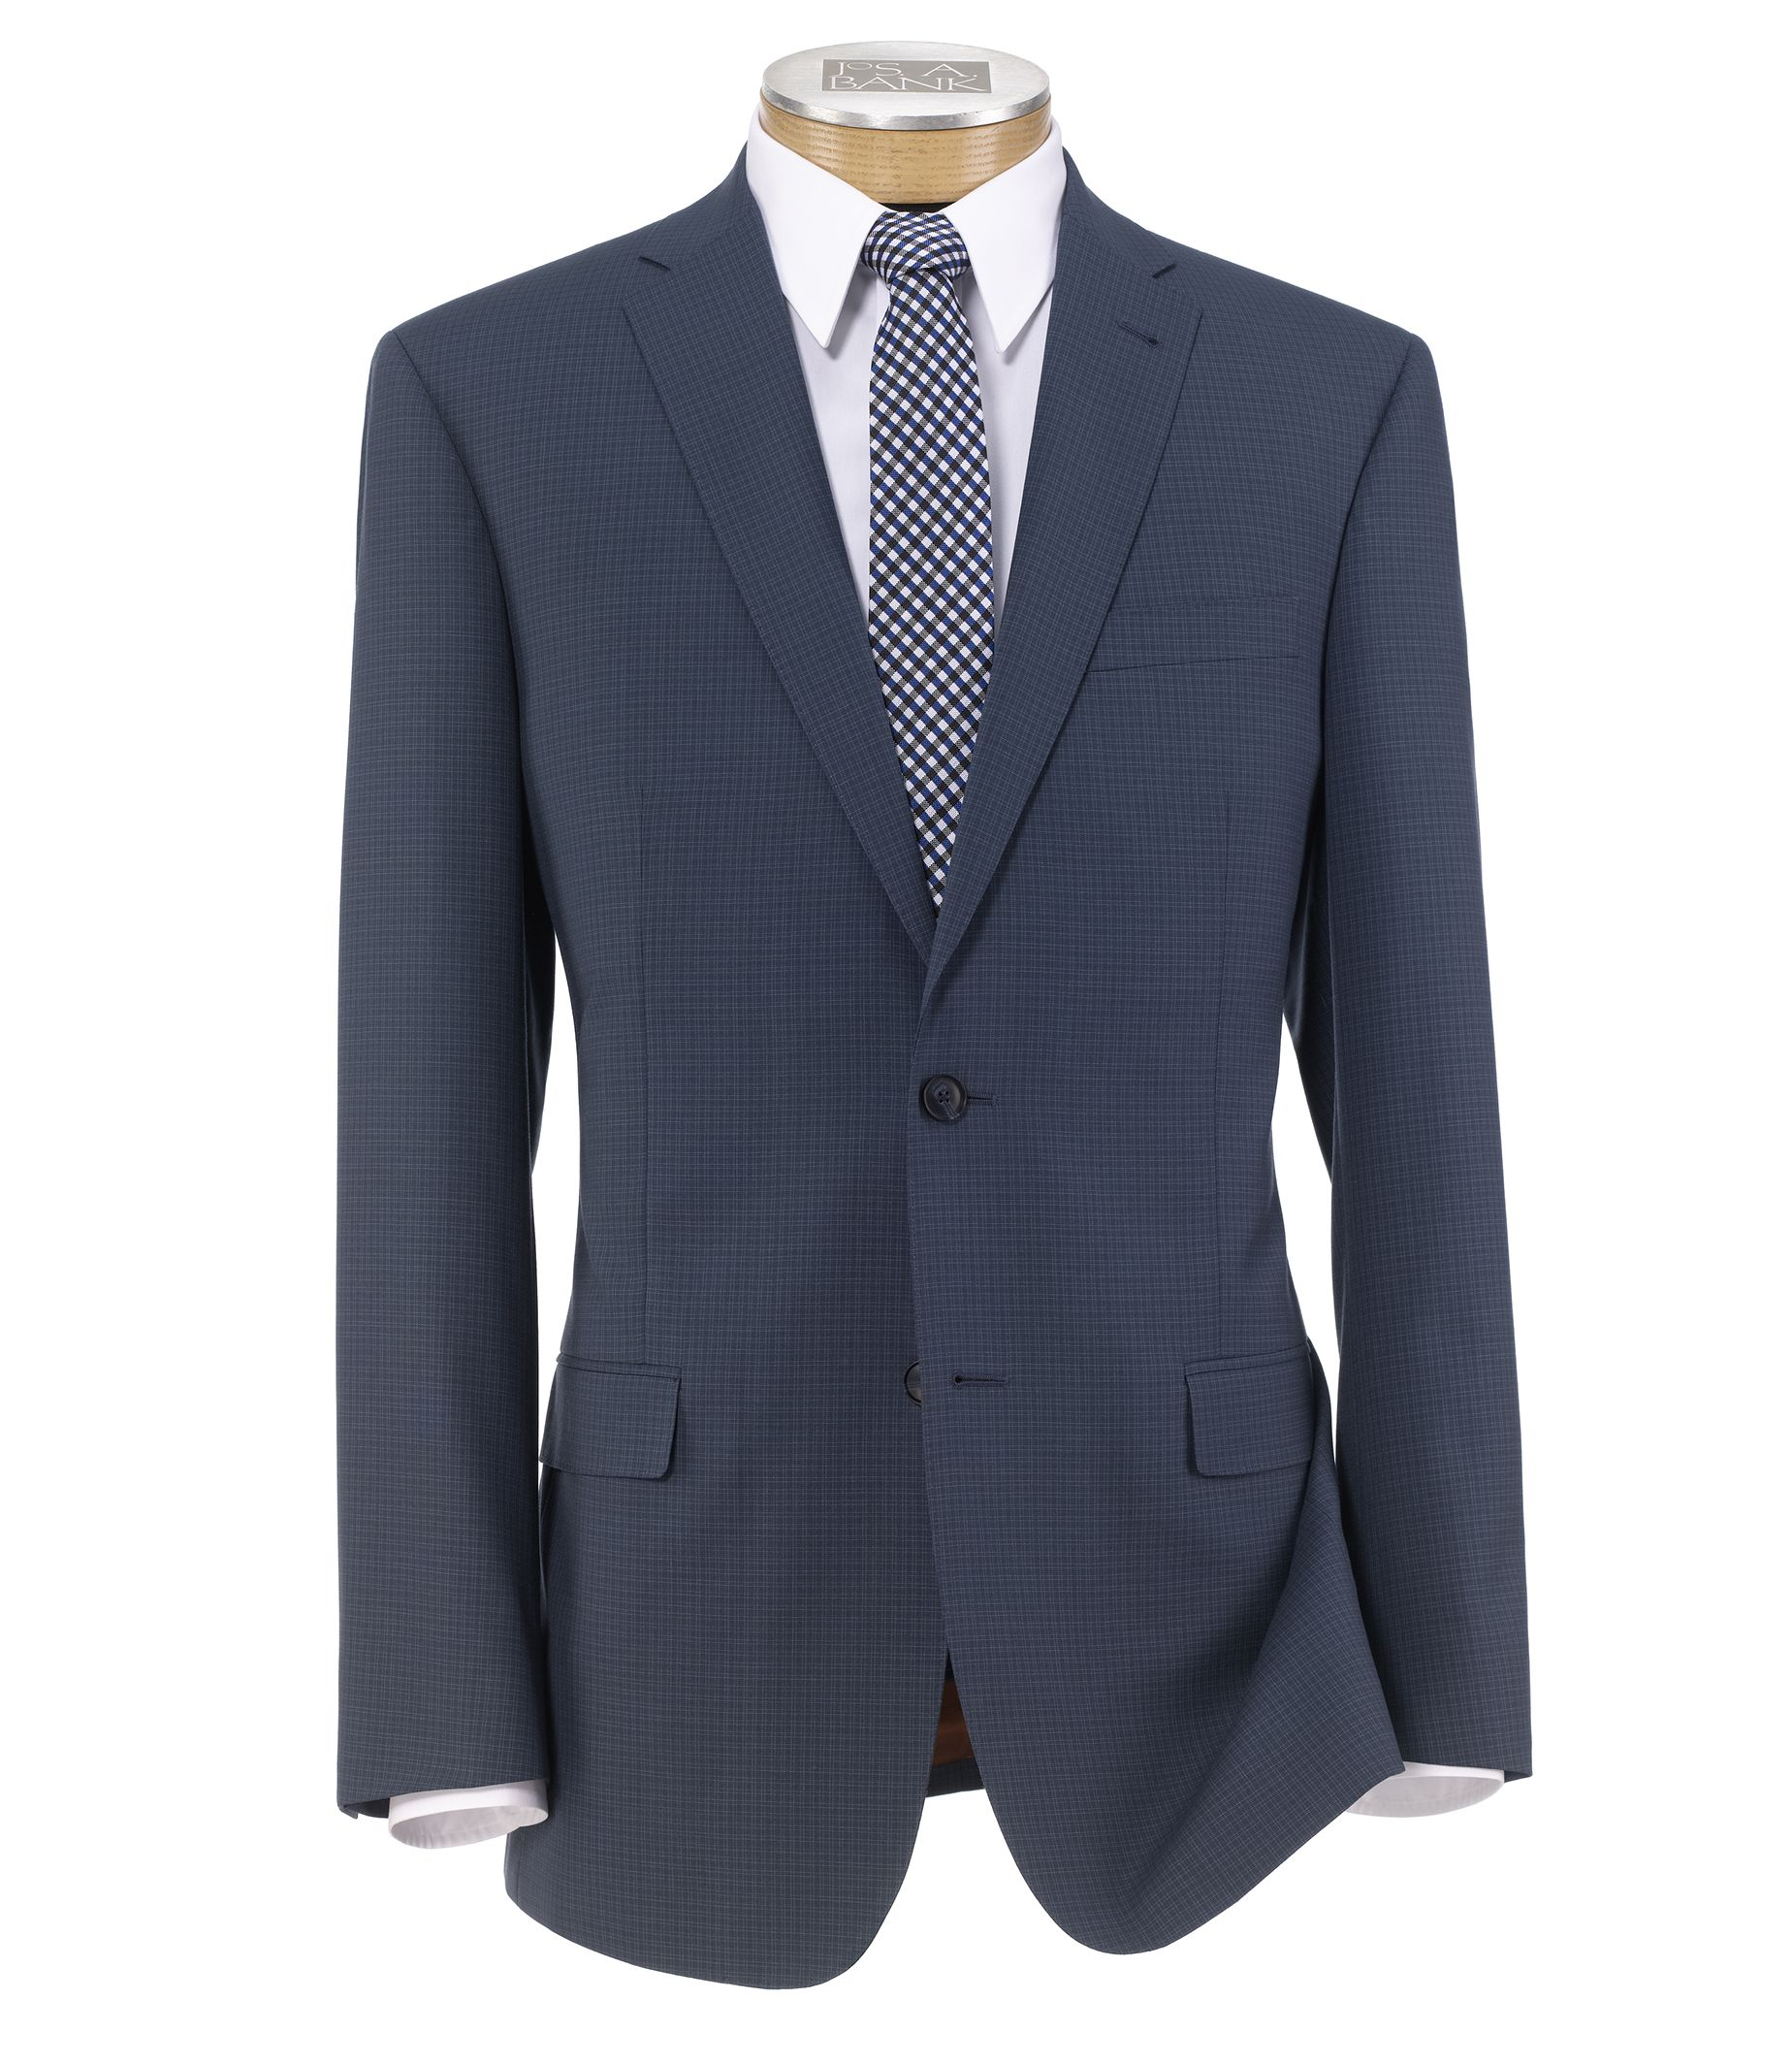 Joseph Slim Fit 2 Button Plain Front Wool Suit - Extended Sizes- Blue Checkered